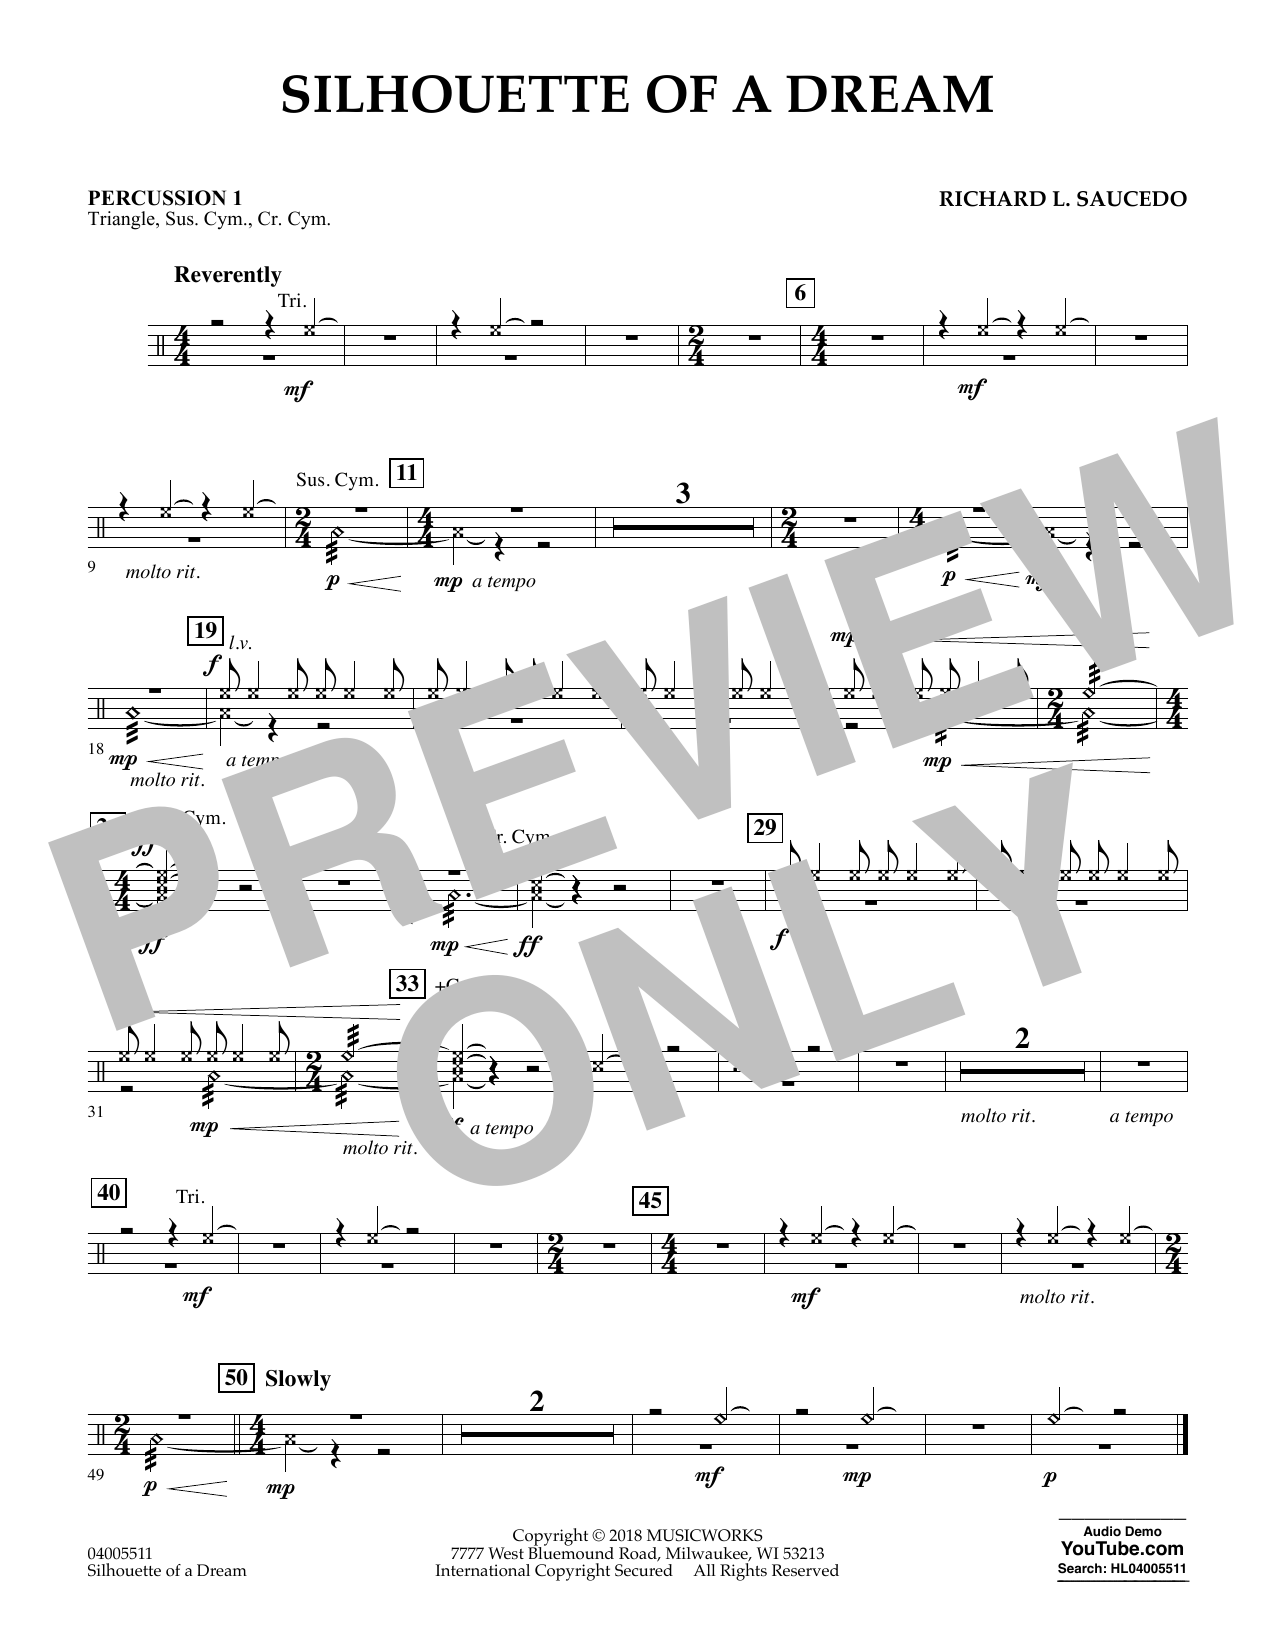 Silhouette of a Dream - Percussion 1 (Concert Band)